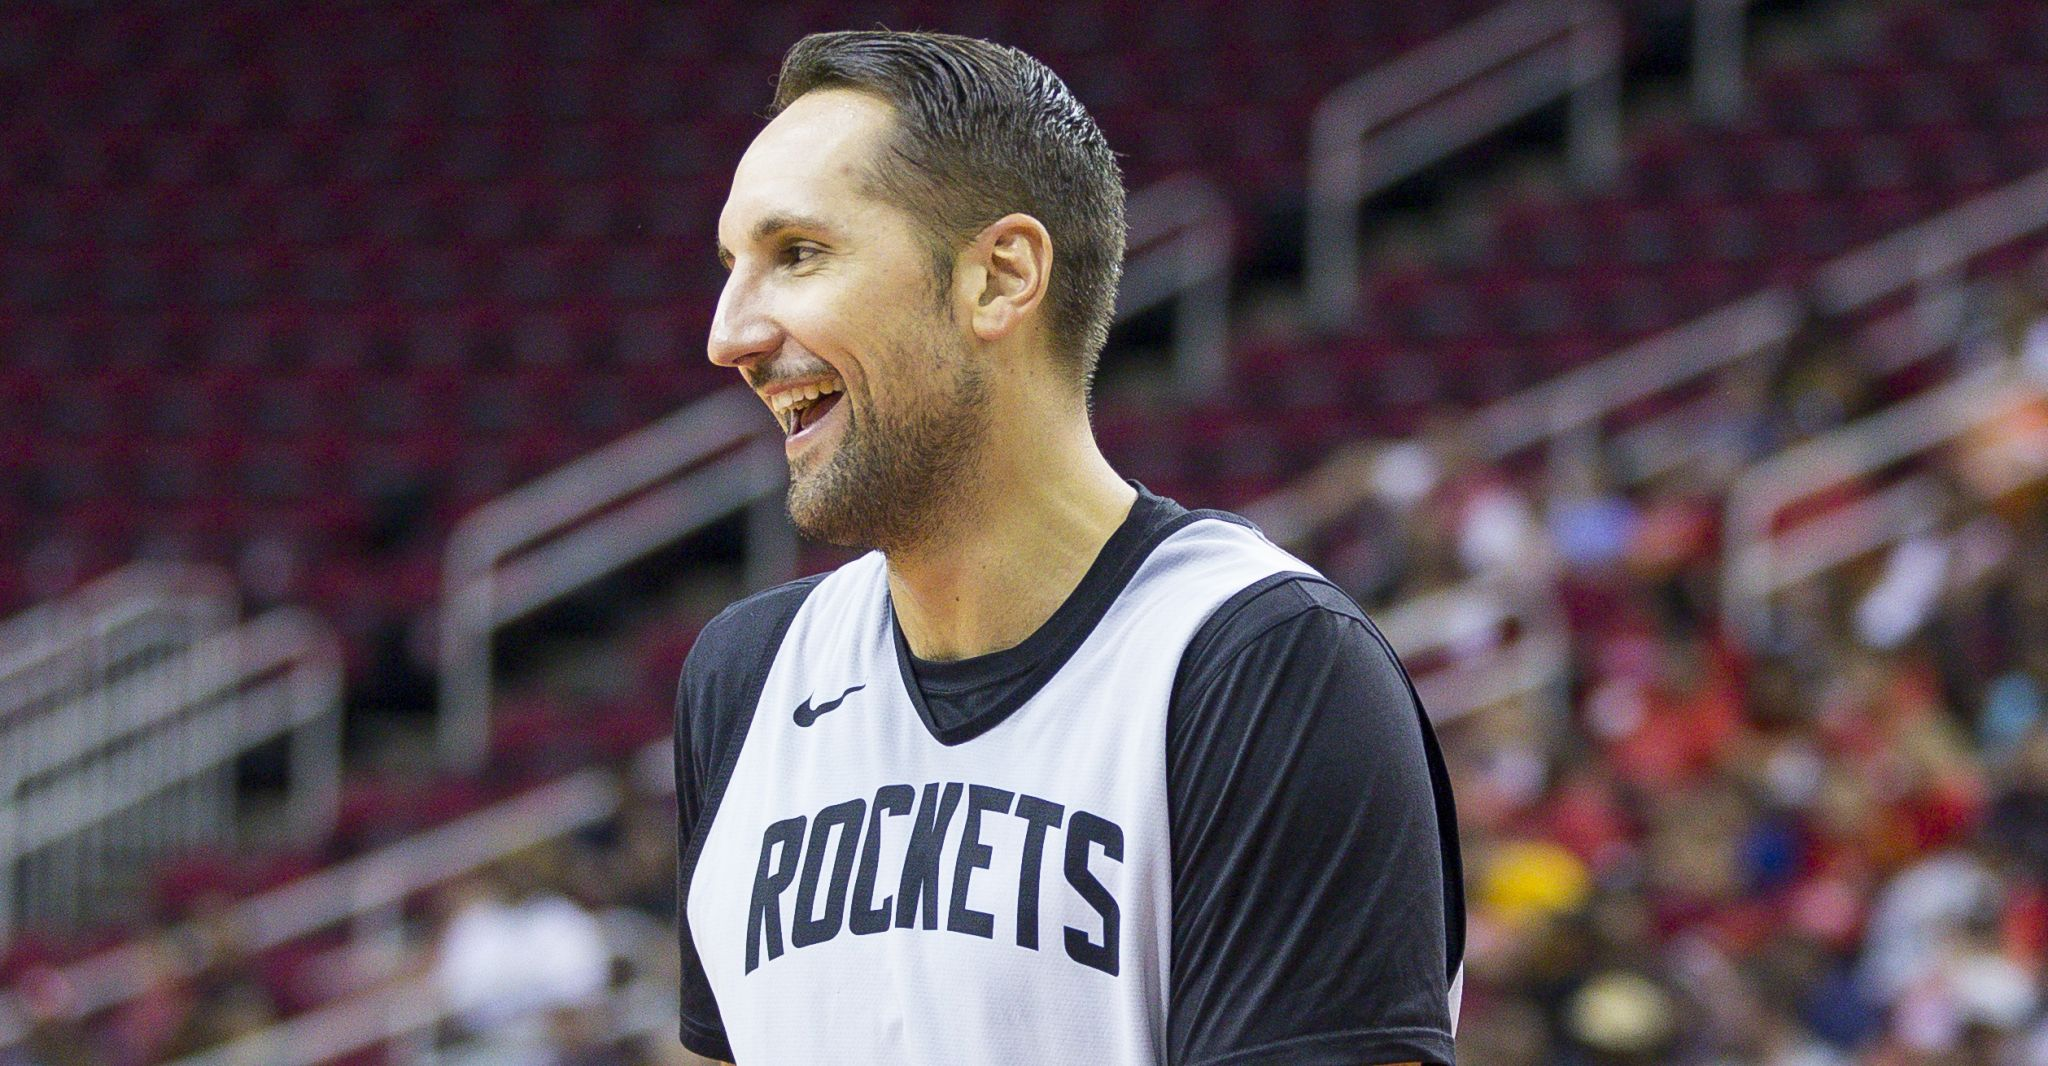 Miami special to Rockets' Ryan Anderson as place where his son was born